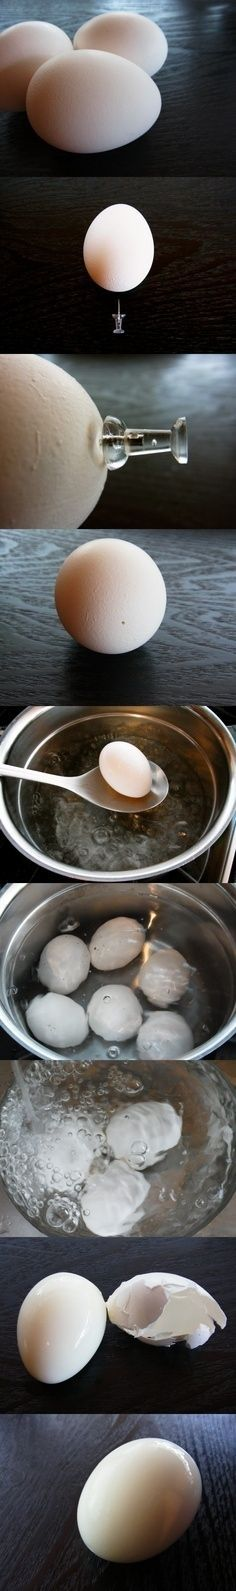 Use a Thumb Tac for the Perfect Boiled Egg | Community Post: 34 Creative Kitchen Hacks That Every Cook Should Know perfect boil, cook, idea, eggs, boil egg, food, kitchen, yummi, recip